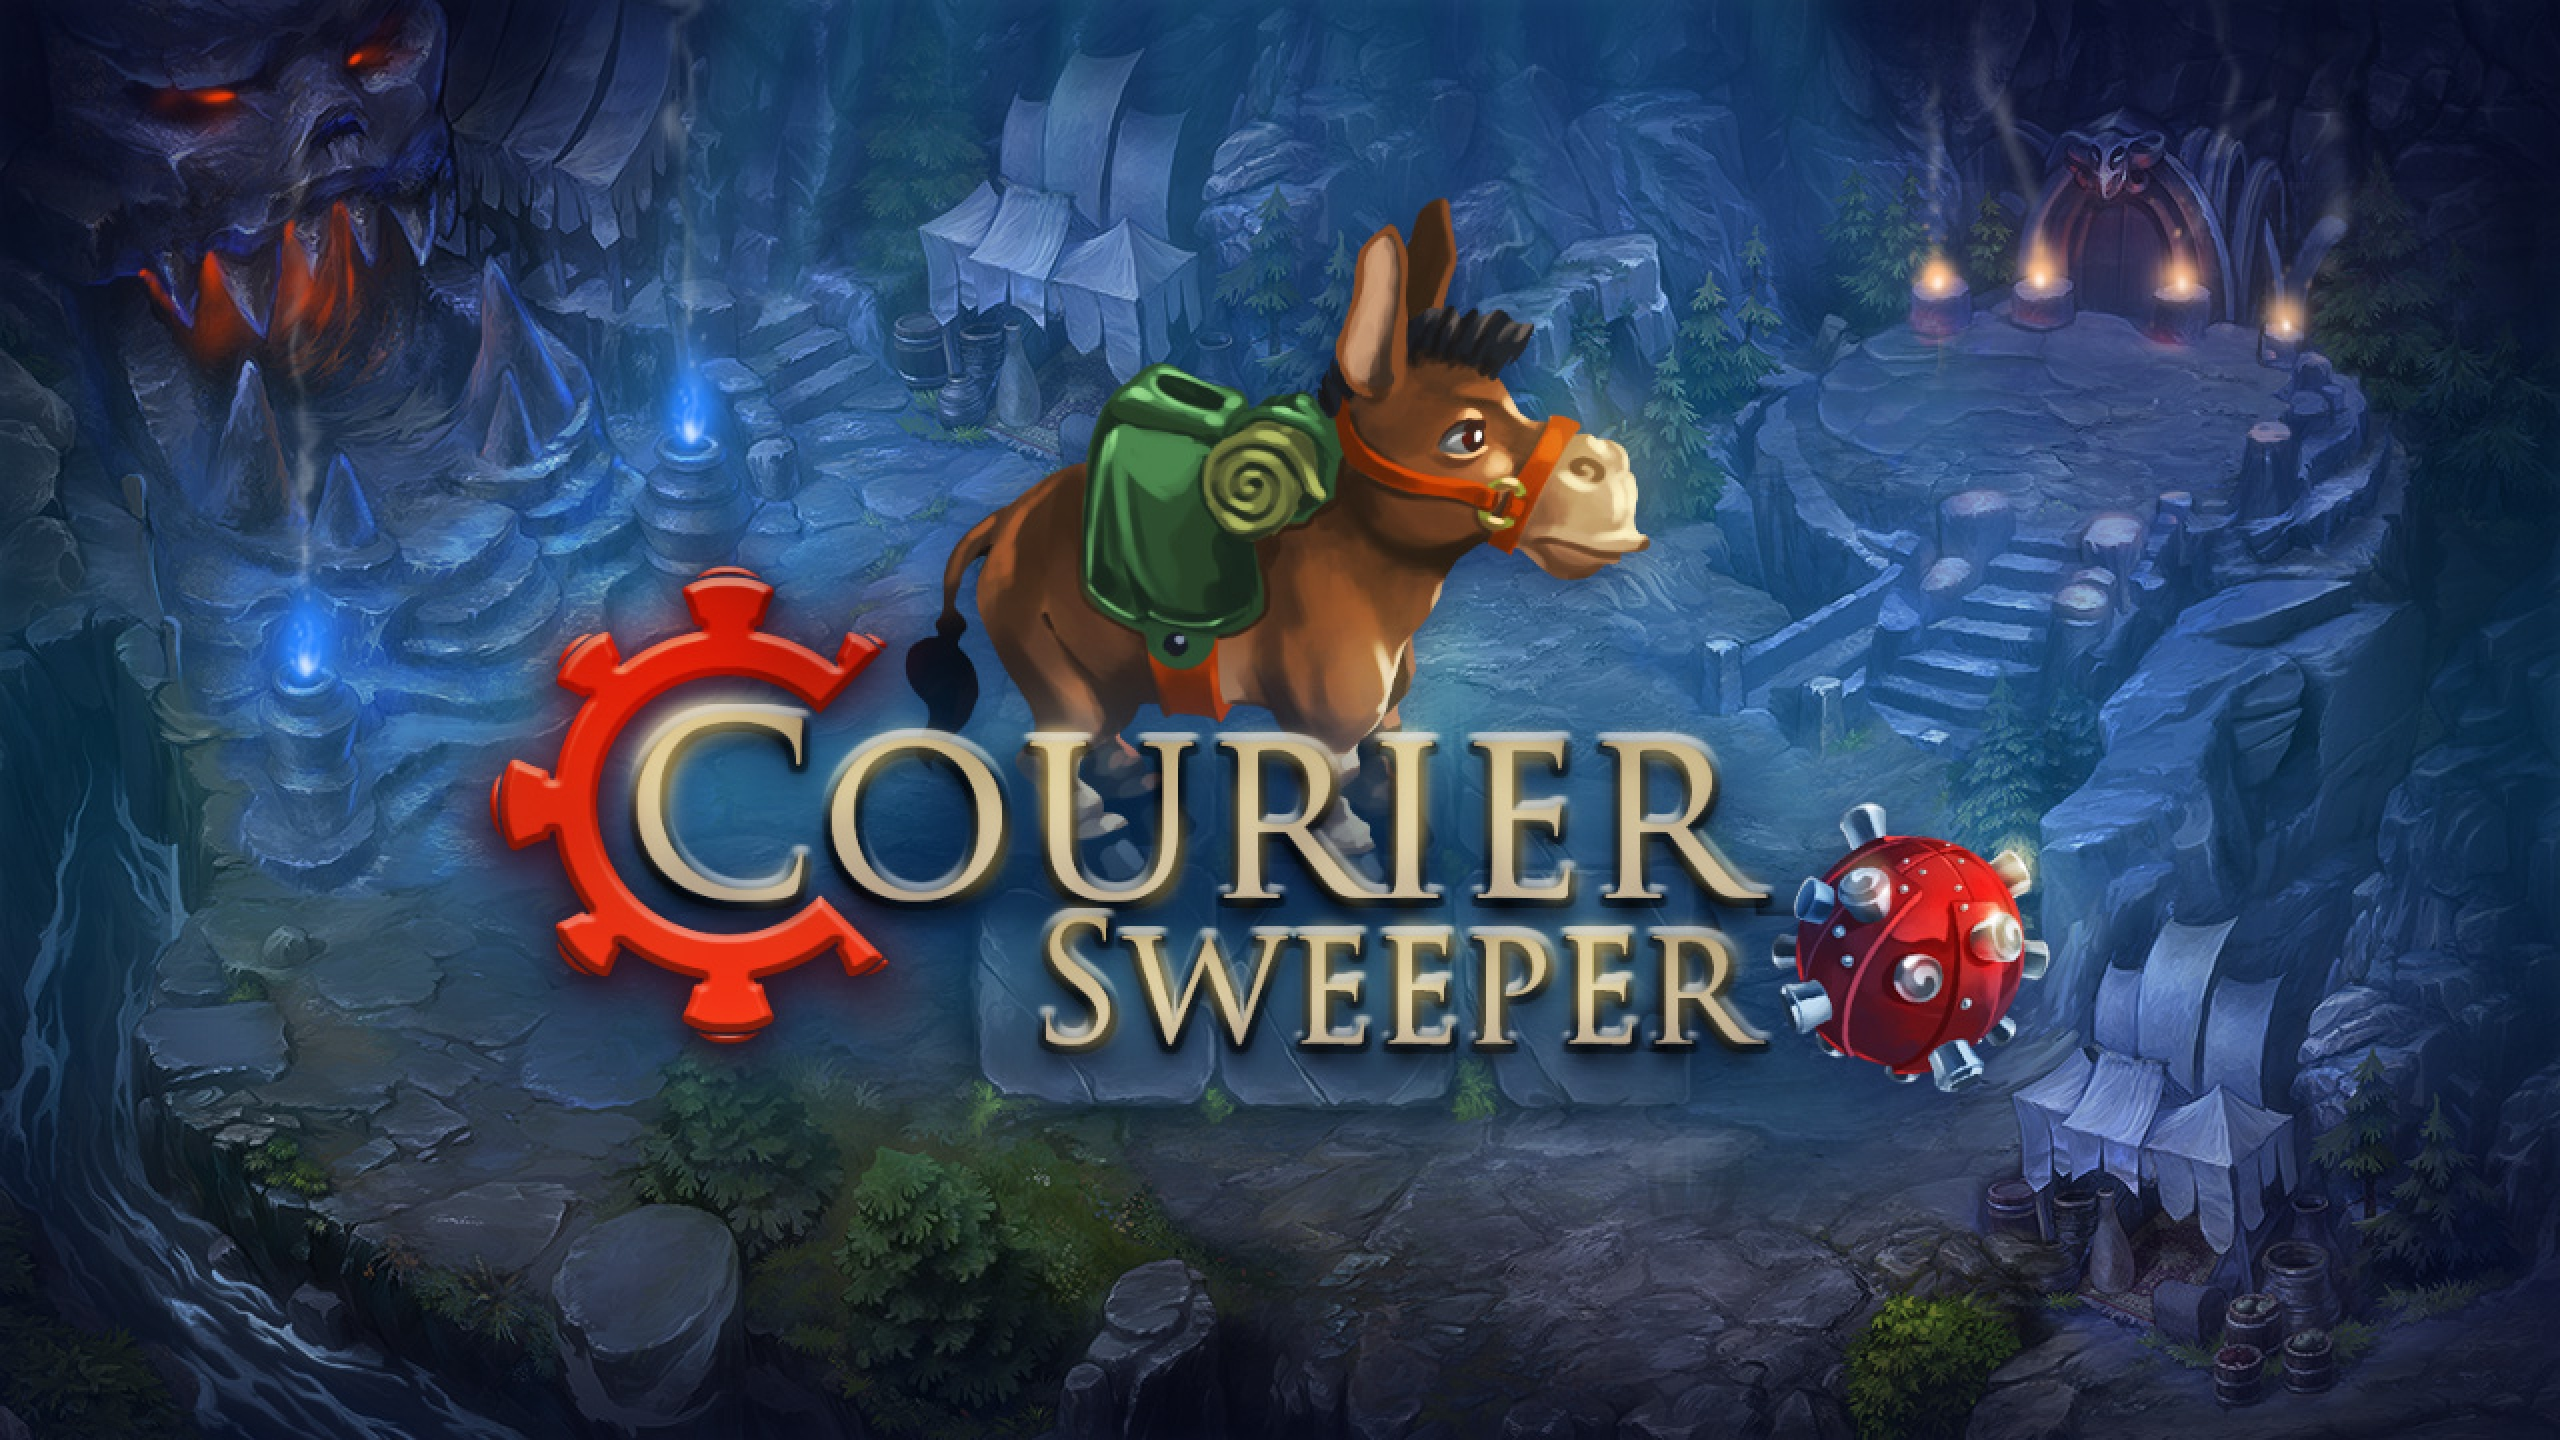 The Courier Sweeper Online Slot Demo Game by Evoplay Entertainment